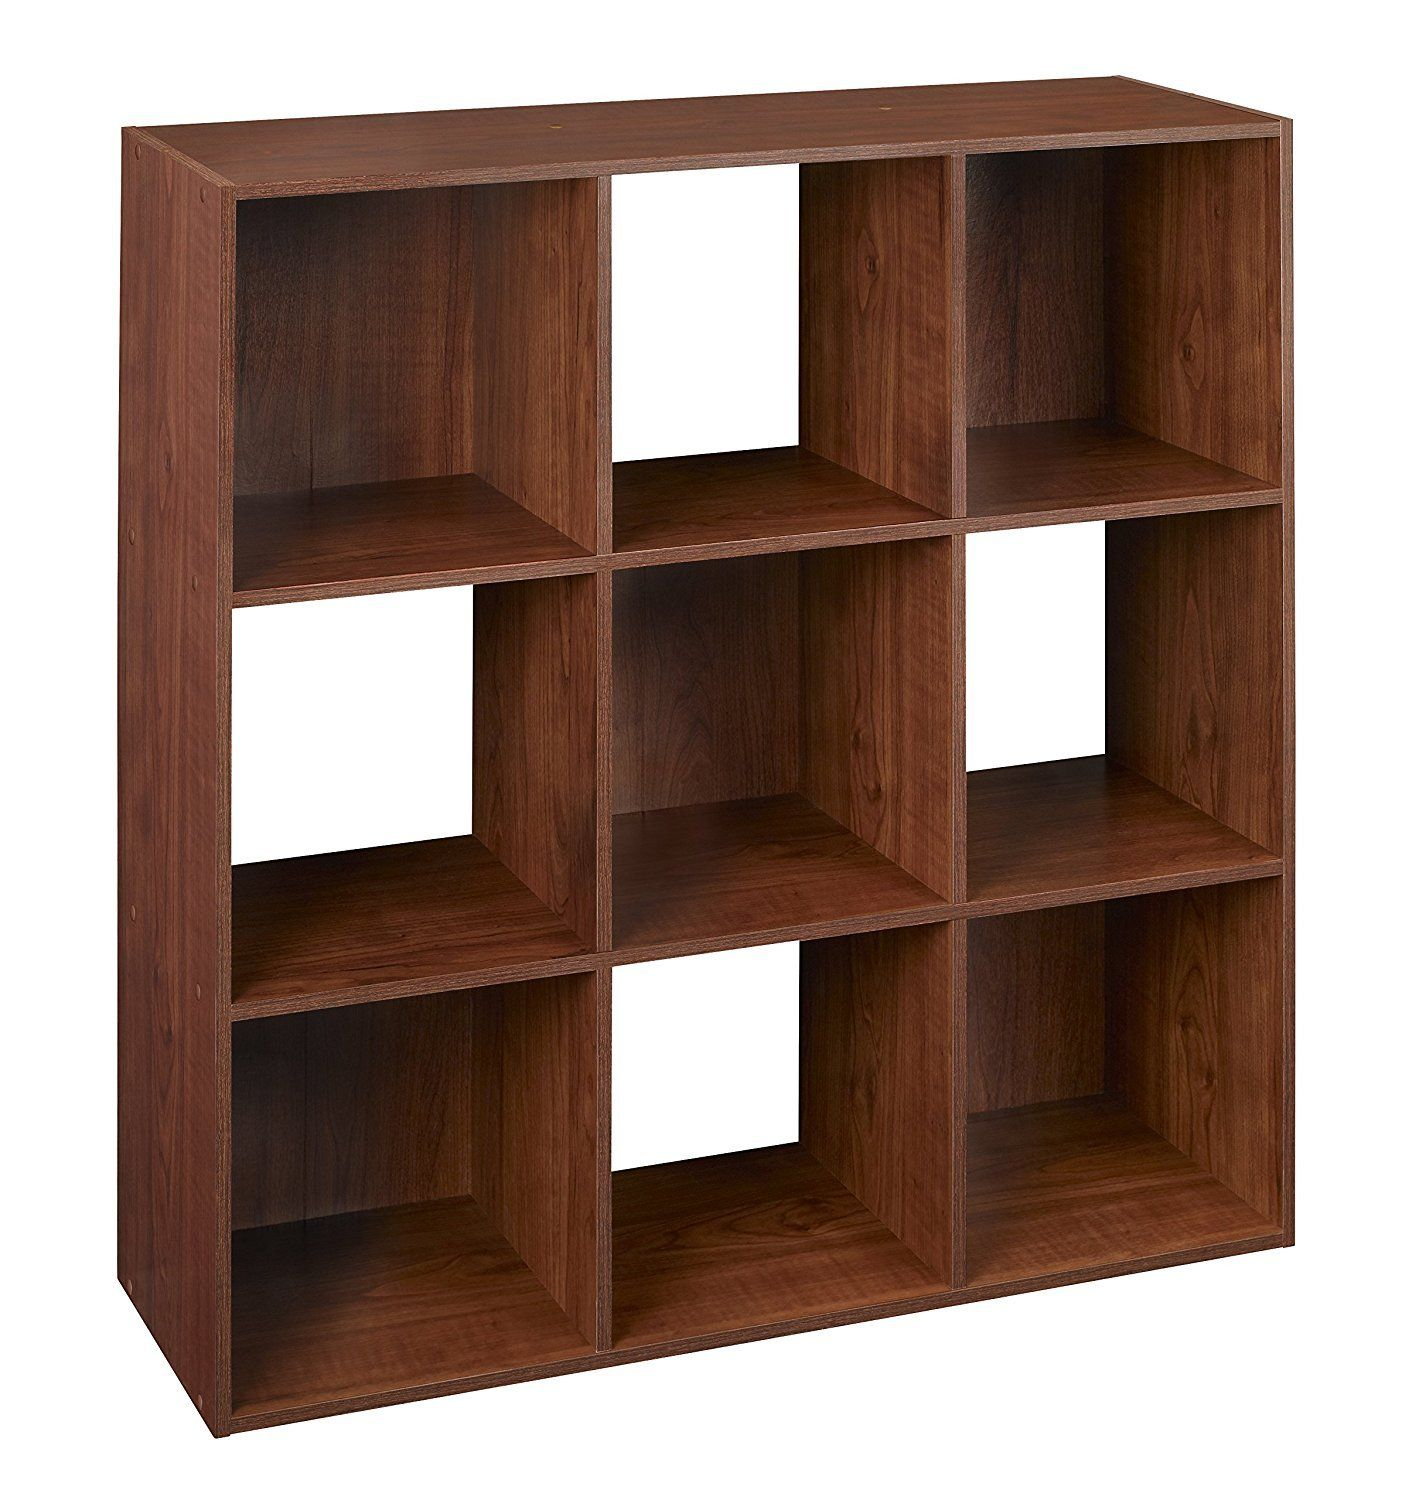 Cubeicals 4 6 8 9 Or 12 Cube Cubical Storage Display Organizer Only 10 In Stock Order Today Product Description Closet Cube Organizer Closetmaid Cube Storage